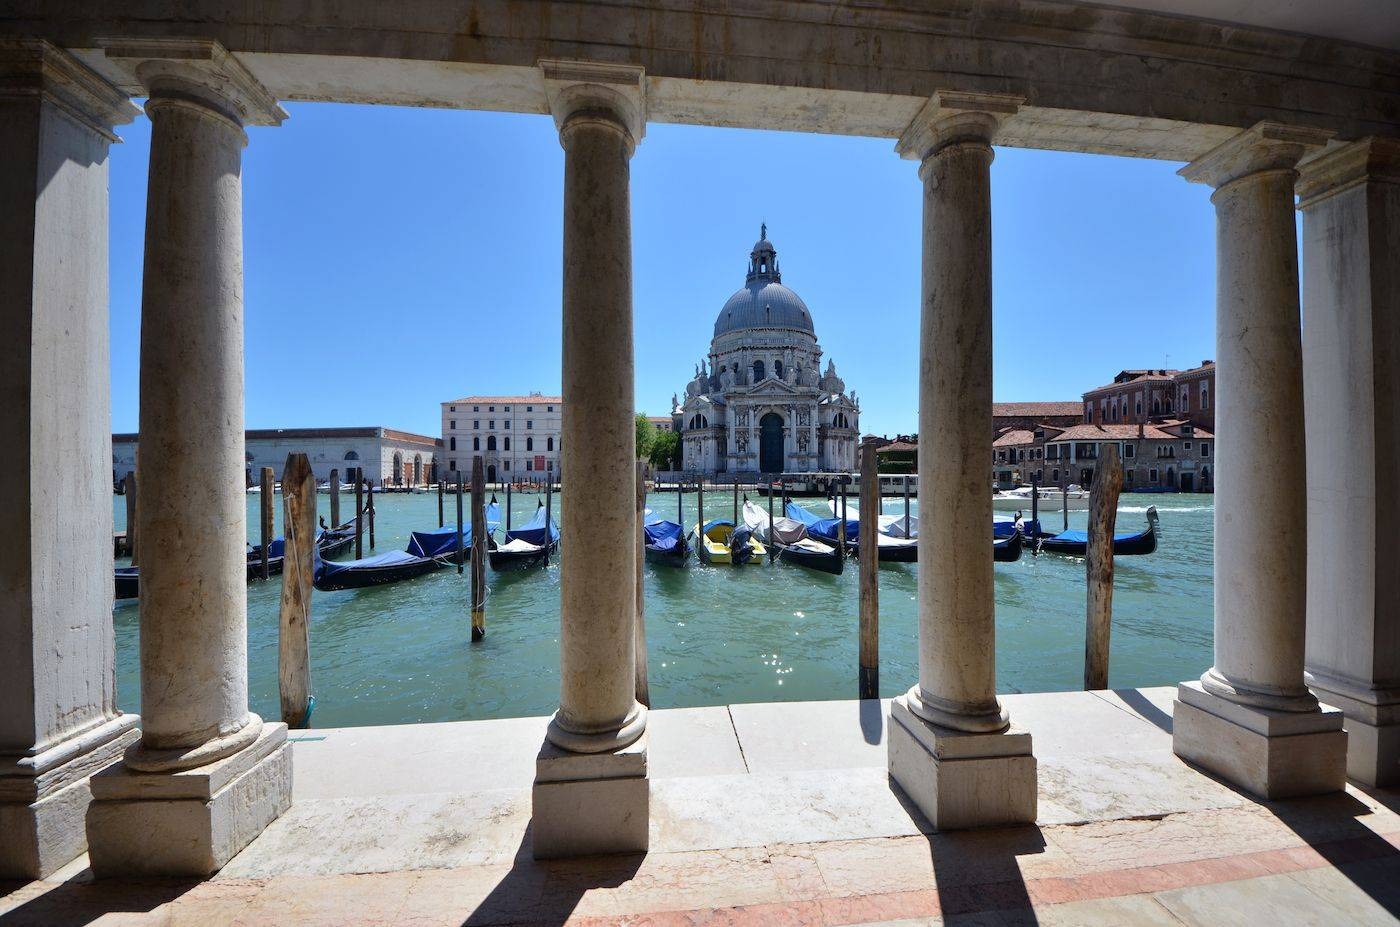 the water taxi will take you directly to the Palace water front on the Grand Canal